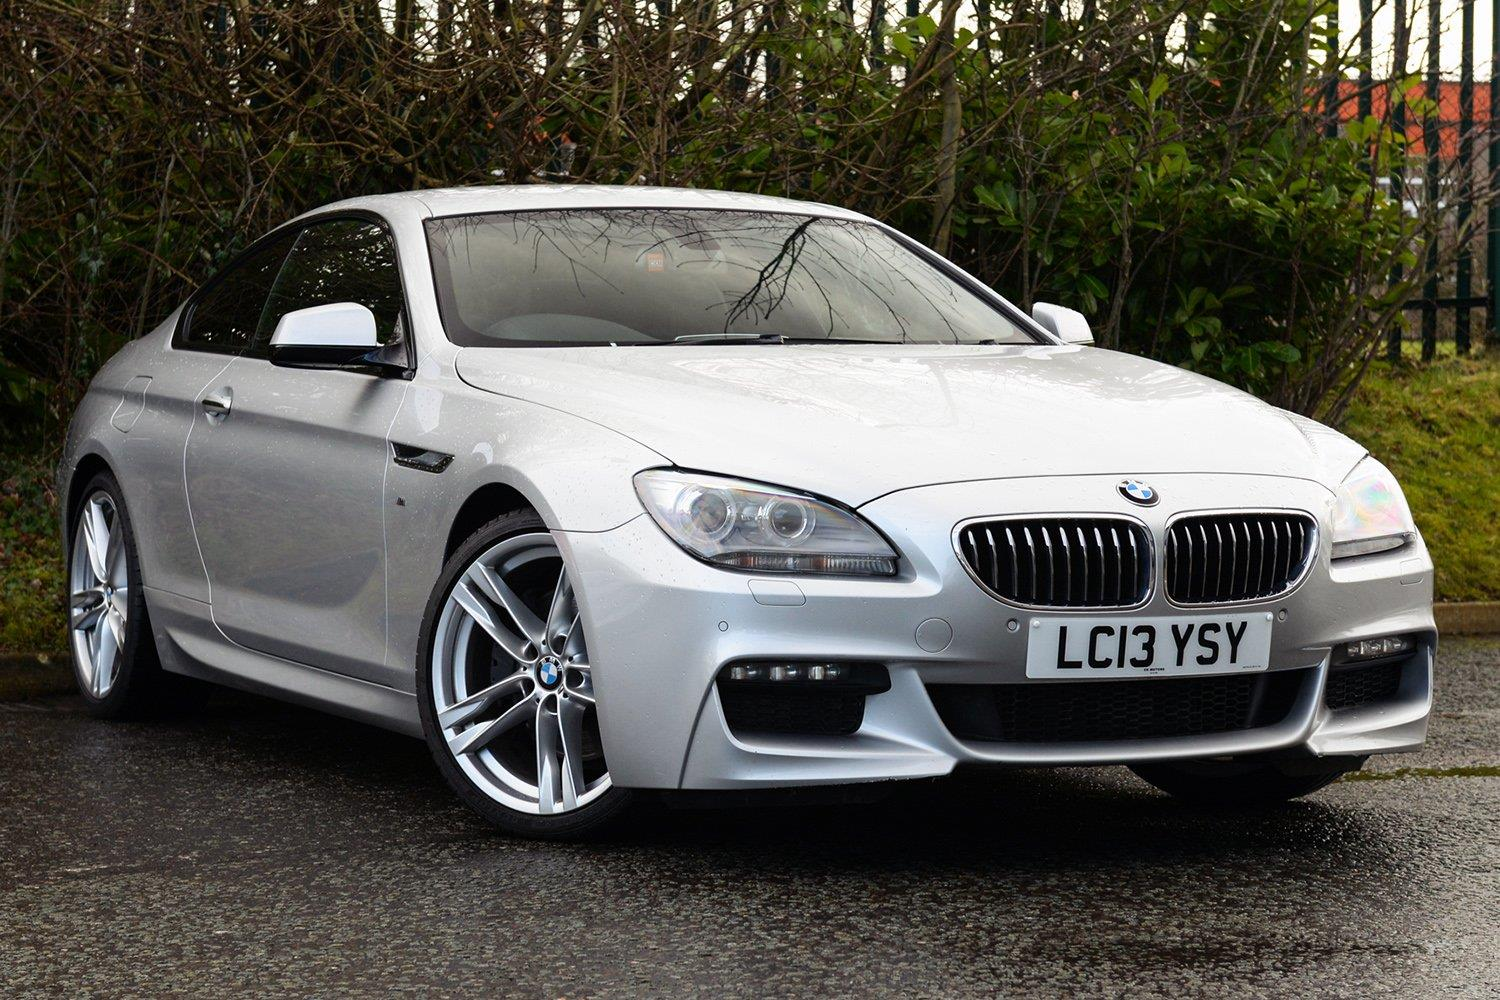 BMW 6 Series Coupé LC13YSY - Image 2